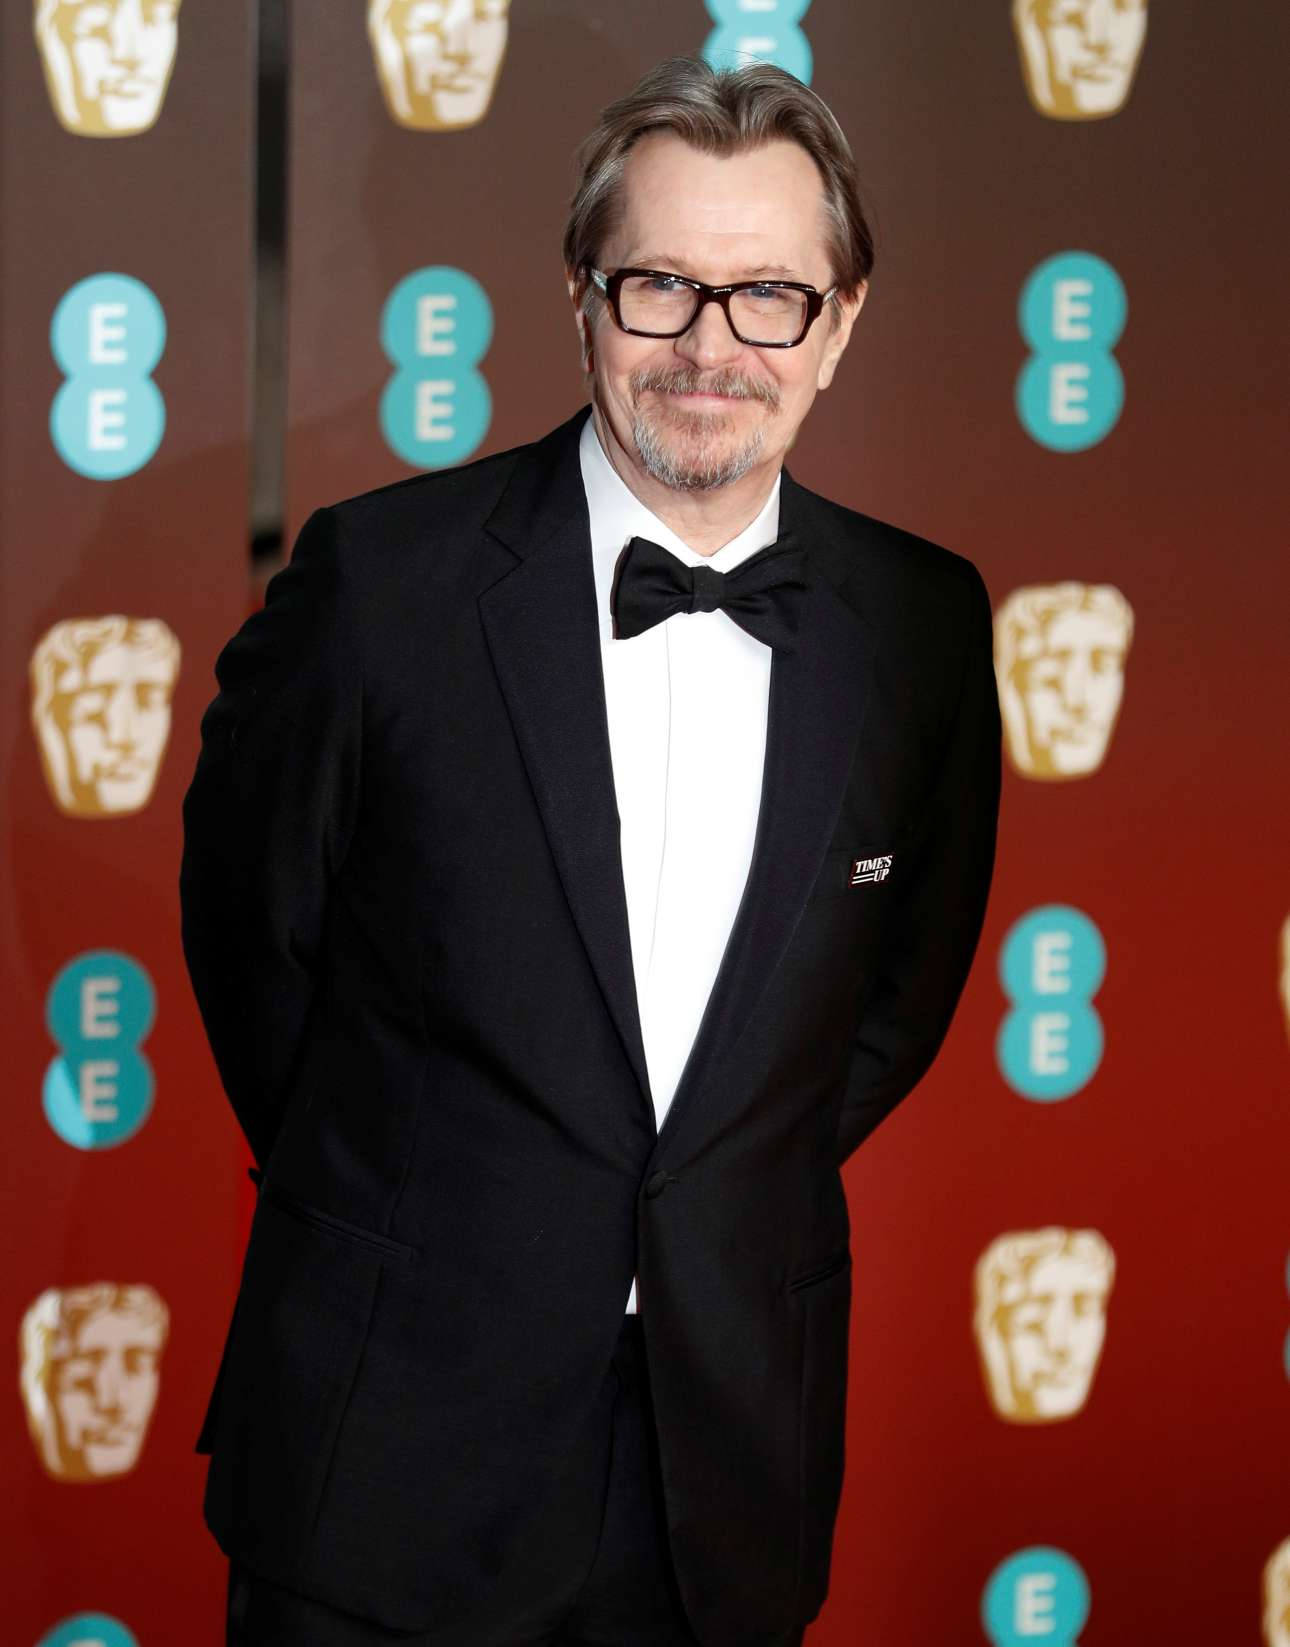 2018-02-18T205816Z_1685864547_RC1433561300_RTRMADP_3_AWARDS-BAFTA